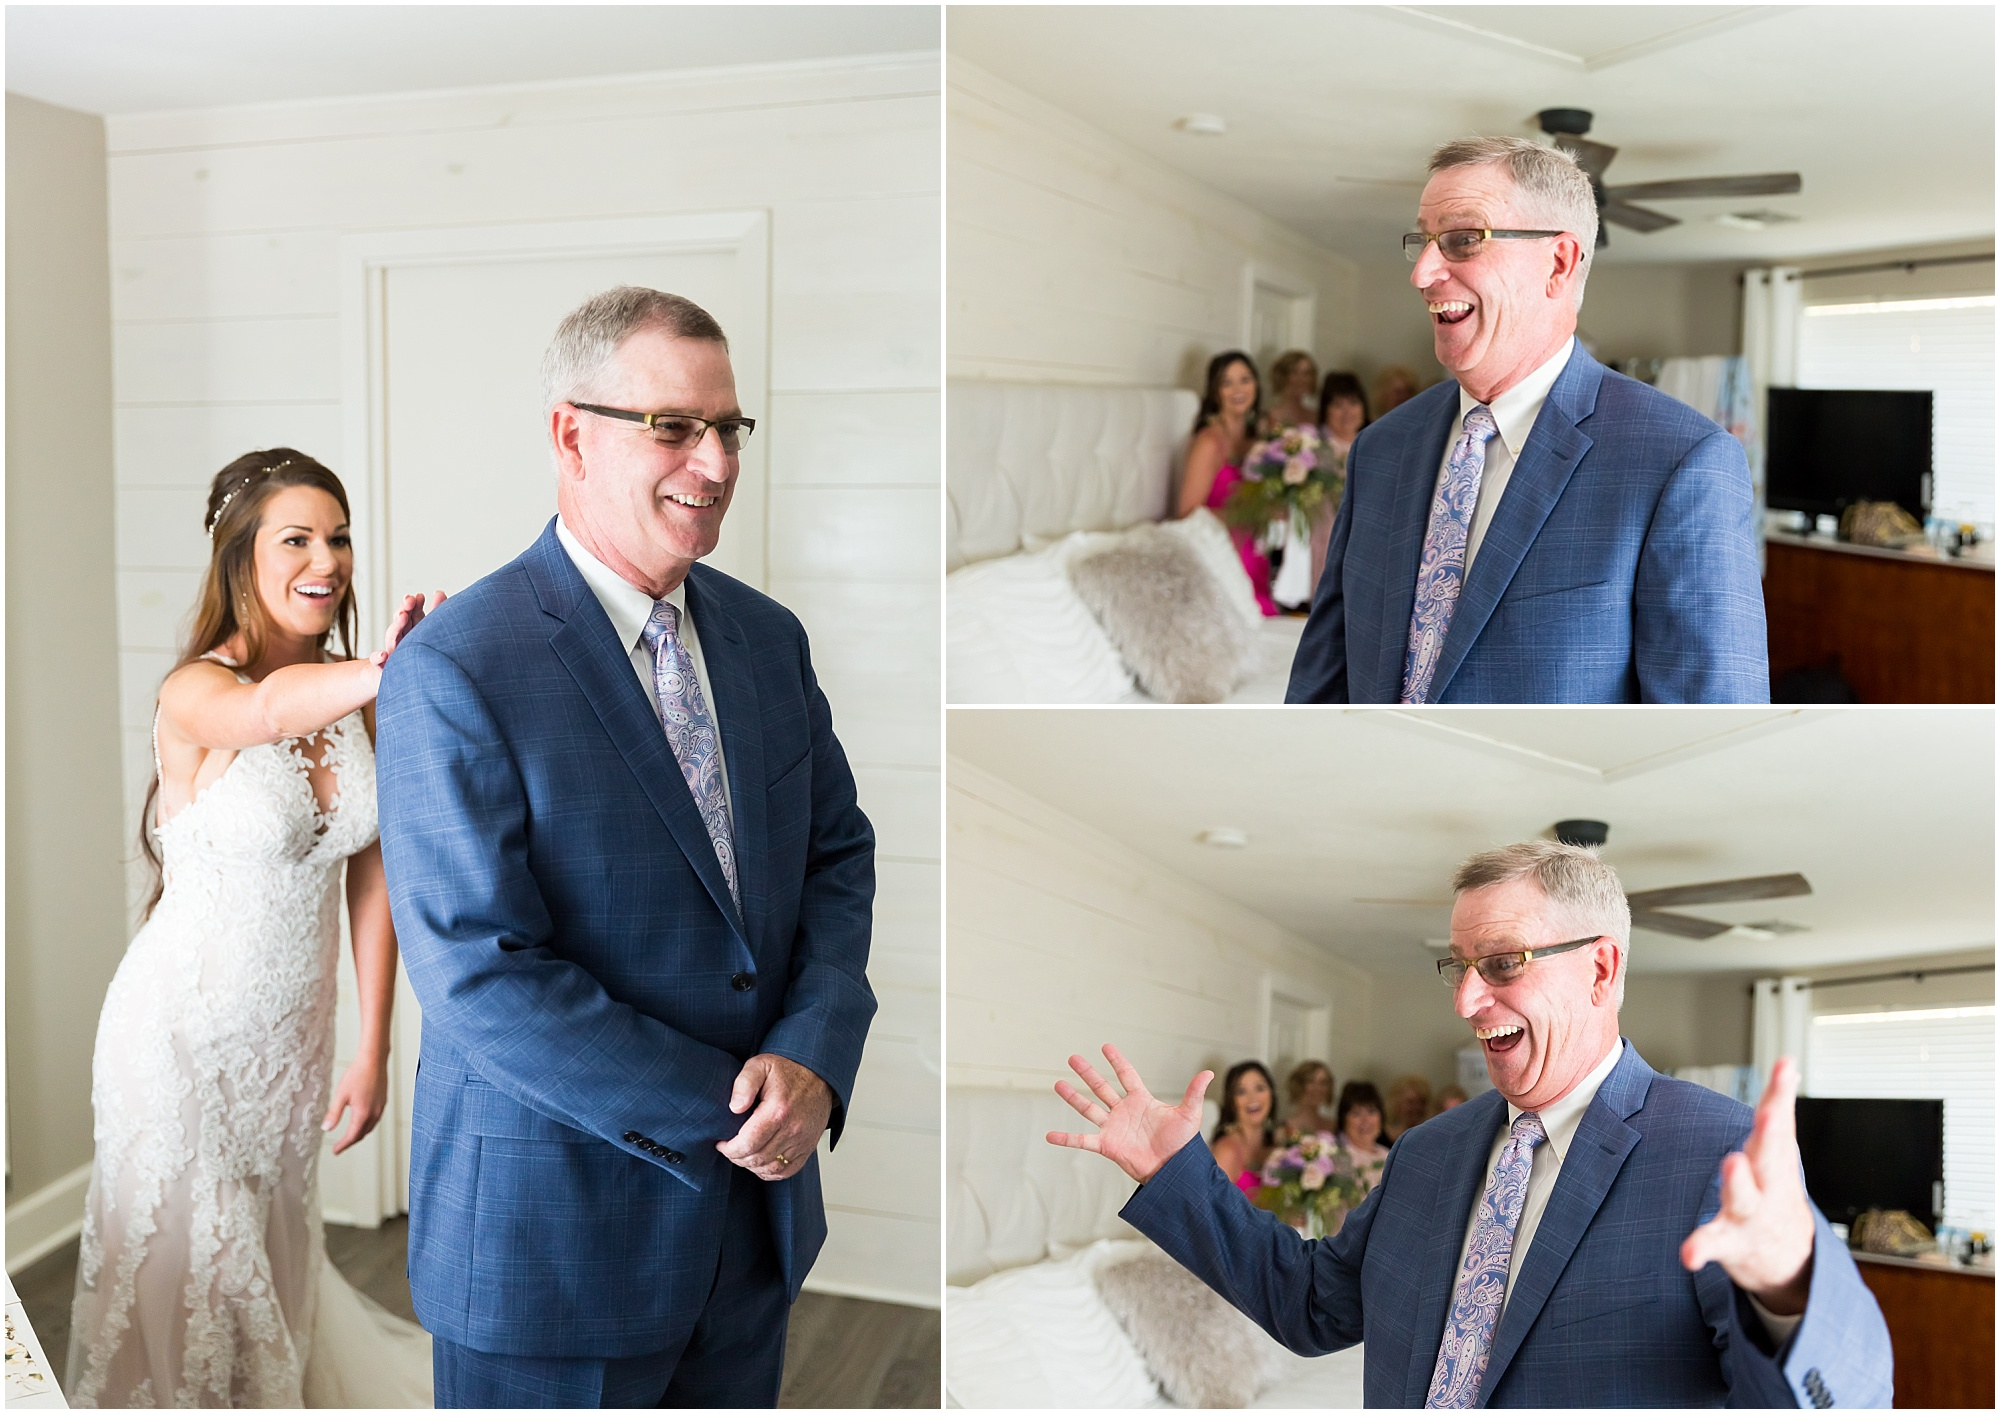 A bride taps her father's shoulder and he turns around to see her in her wedding dress for the first time | Jason & Melaina Photography | www.jasonandmelaina.com